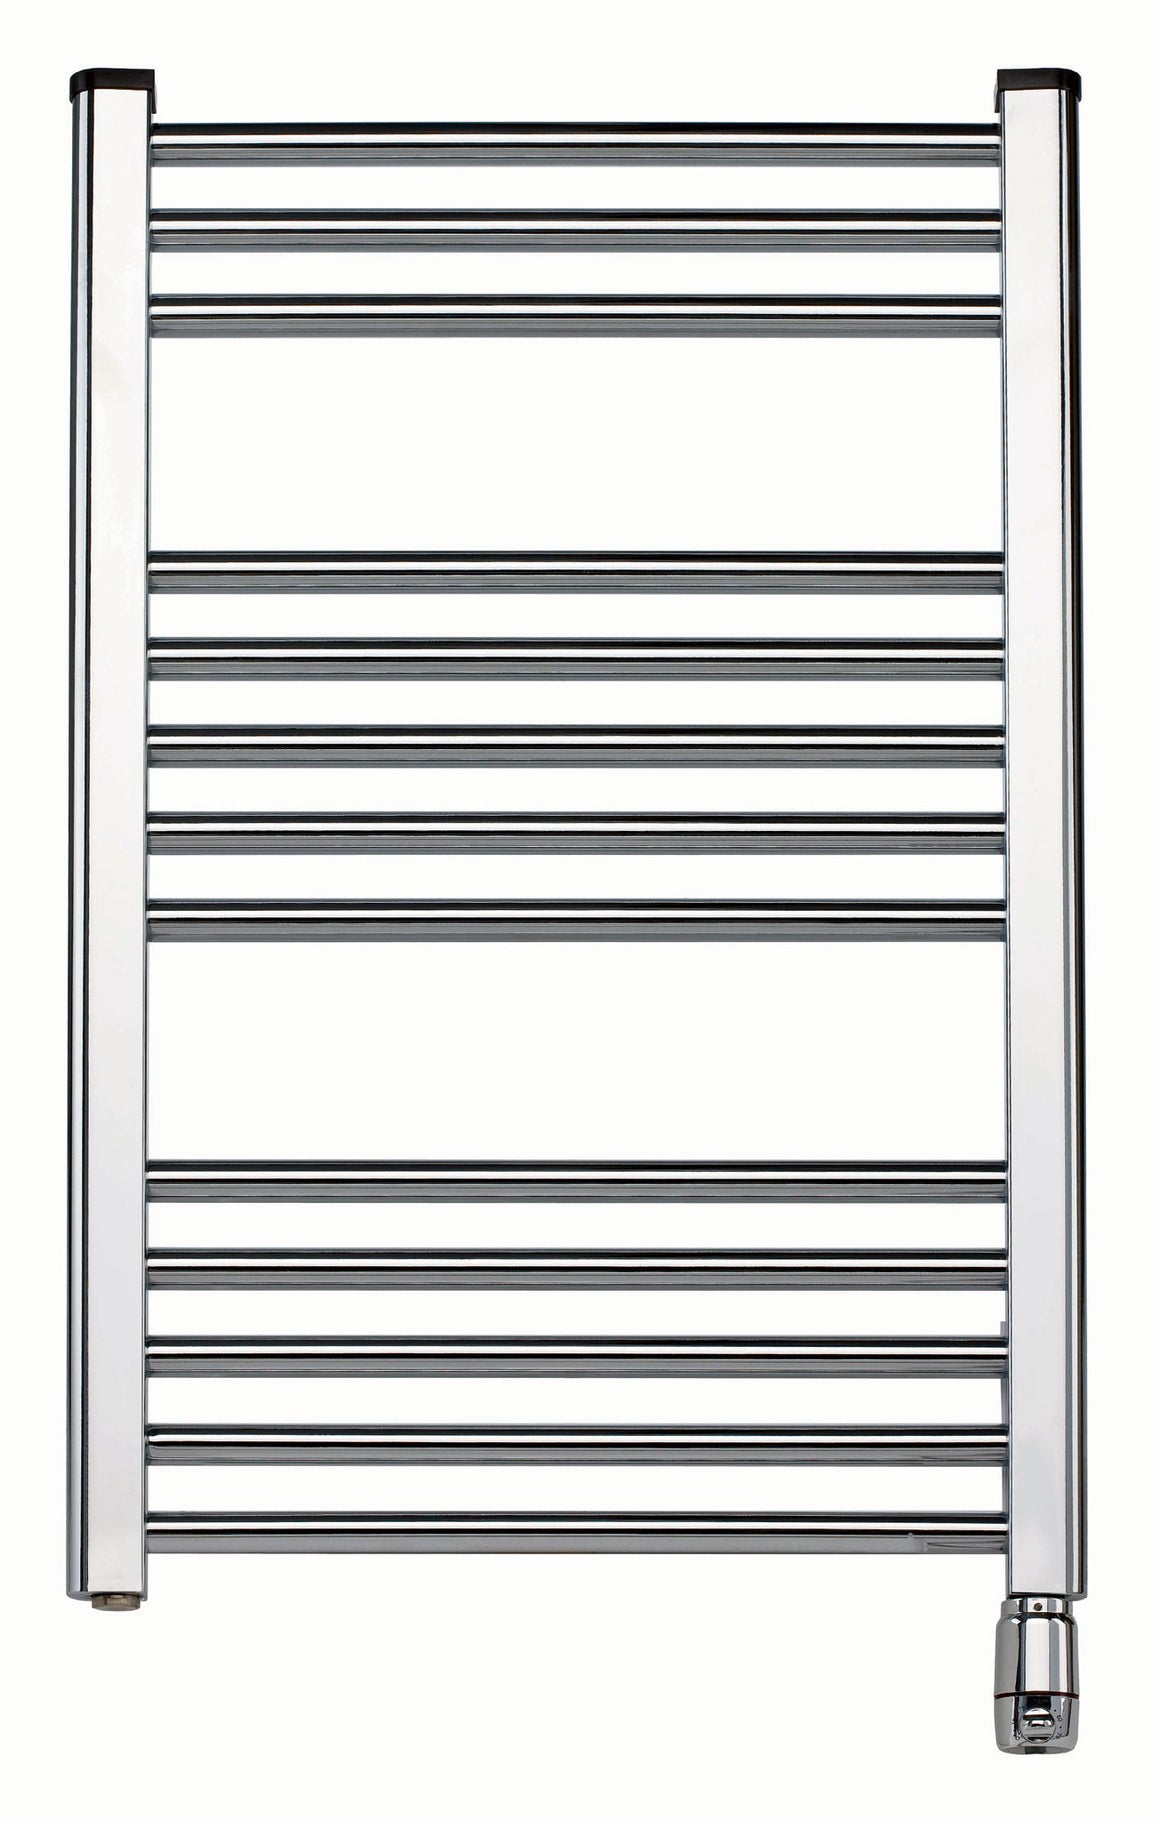 elnur tbcElectric Towel Warmer - Chrome